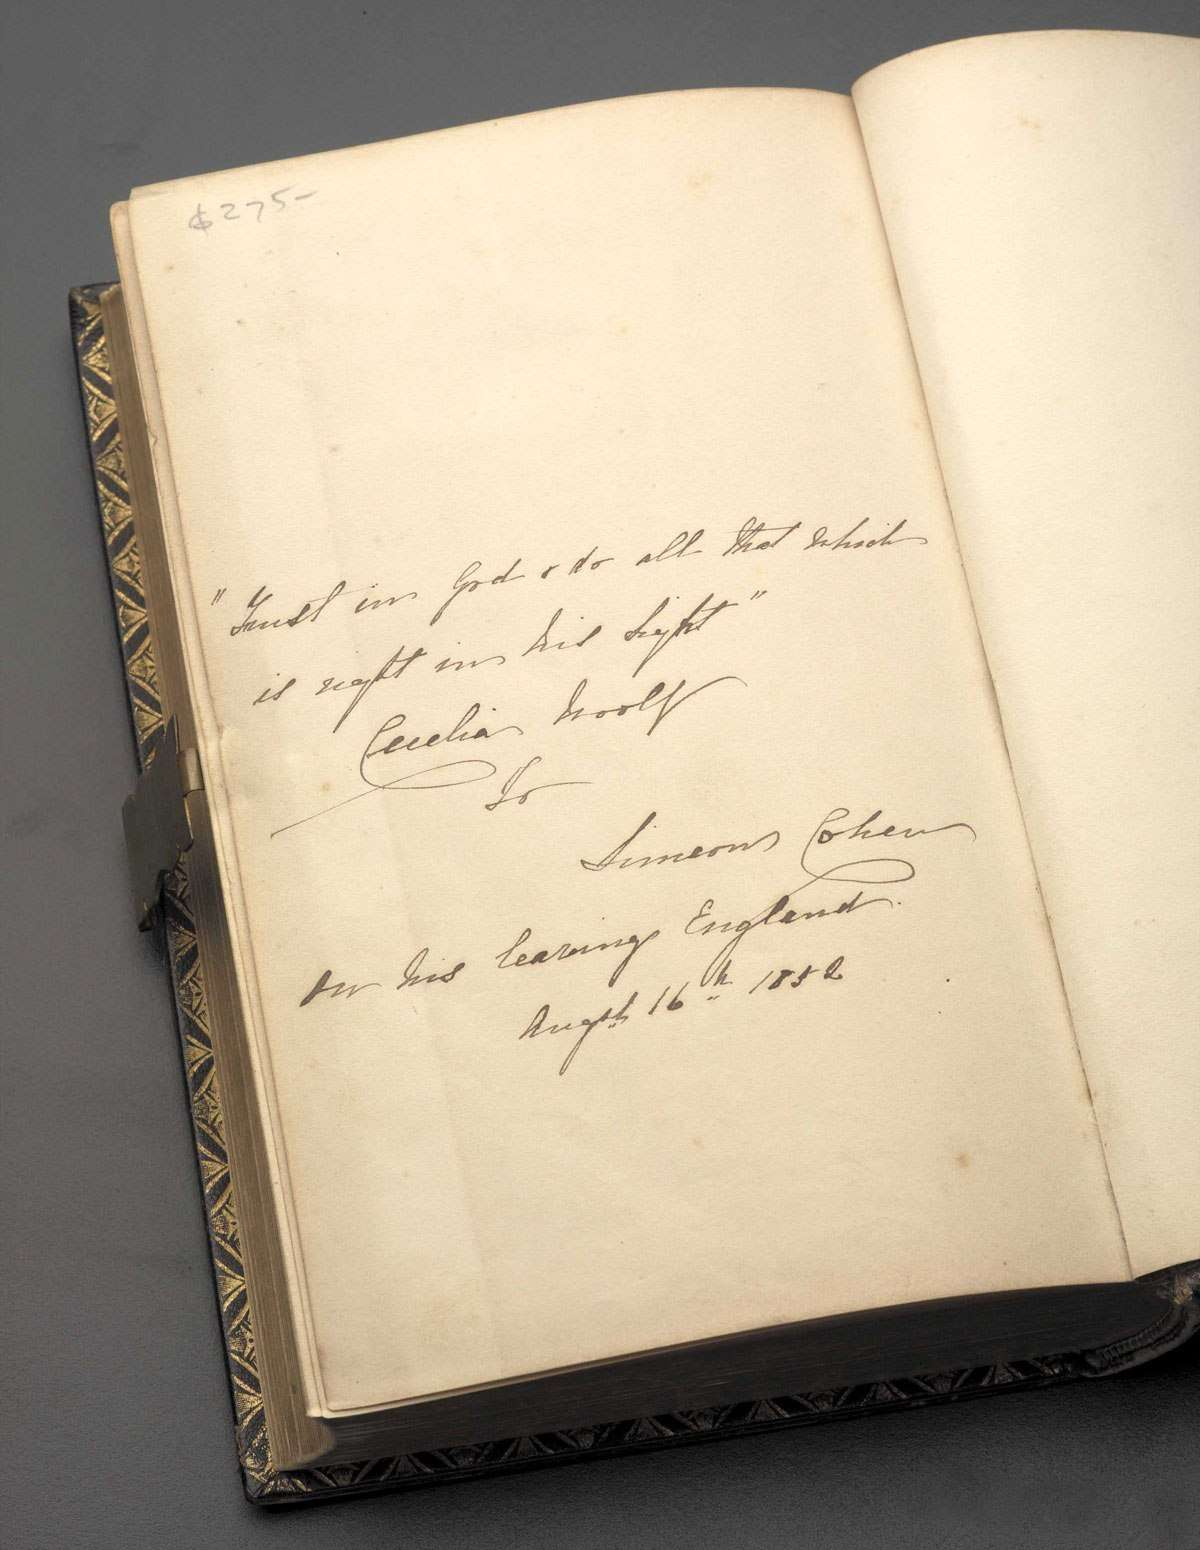 Inscription in Jewish School and Family Bible. The First Part containing the Pentateuch